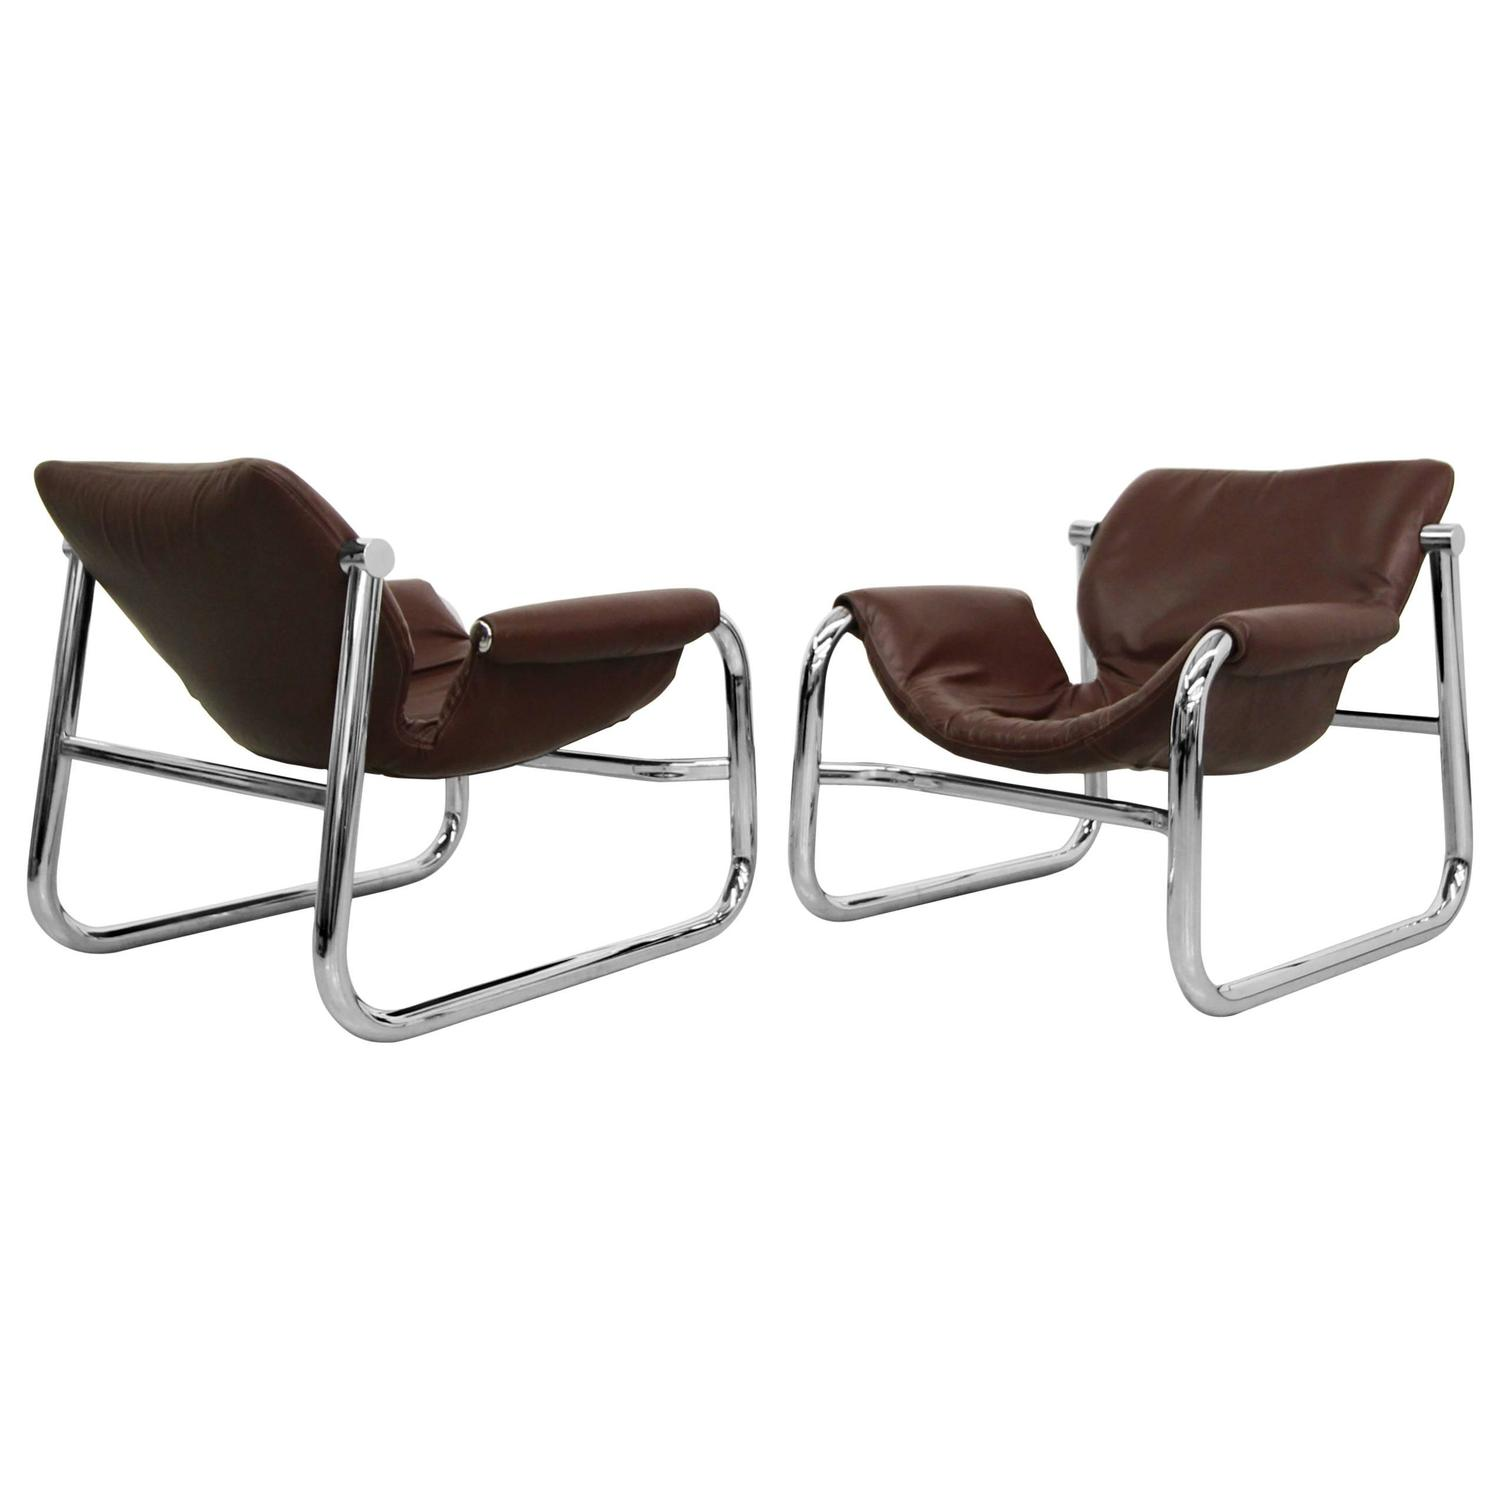 "Alpha"" Lounge Chairs by Maurice Burke for Pozza at 1stdibs"